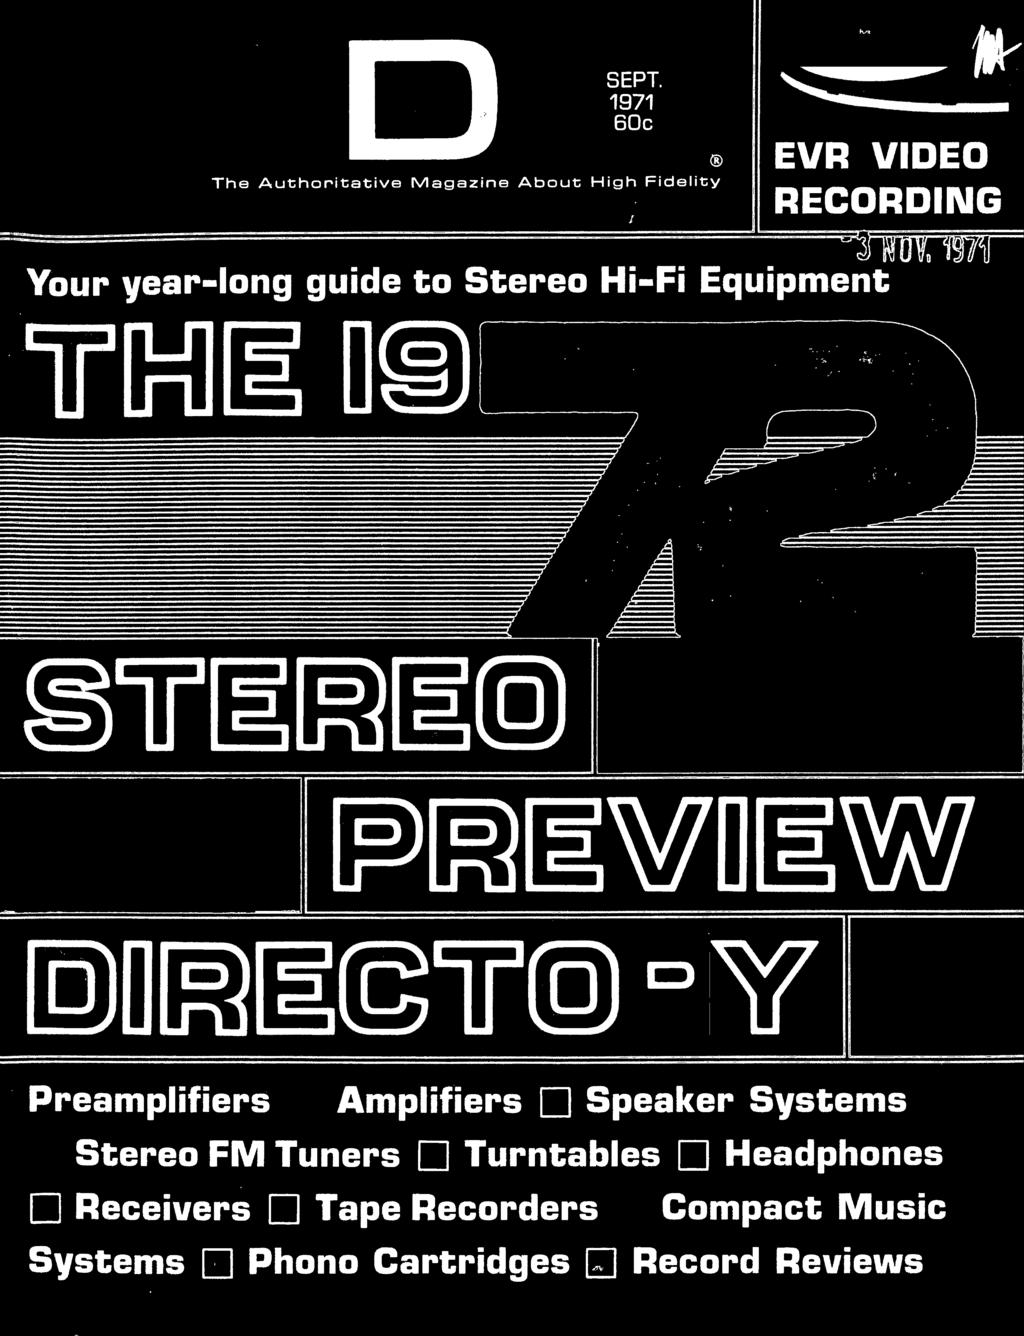 The Authoritative Magazine About High Fidelity Ew0 W Mm Stereo Remington 870 Parts Diagram Lzk Gallery Fm Tuners 11 Turntables Headphones Eceivers Tape